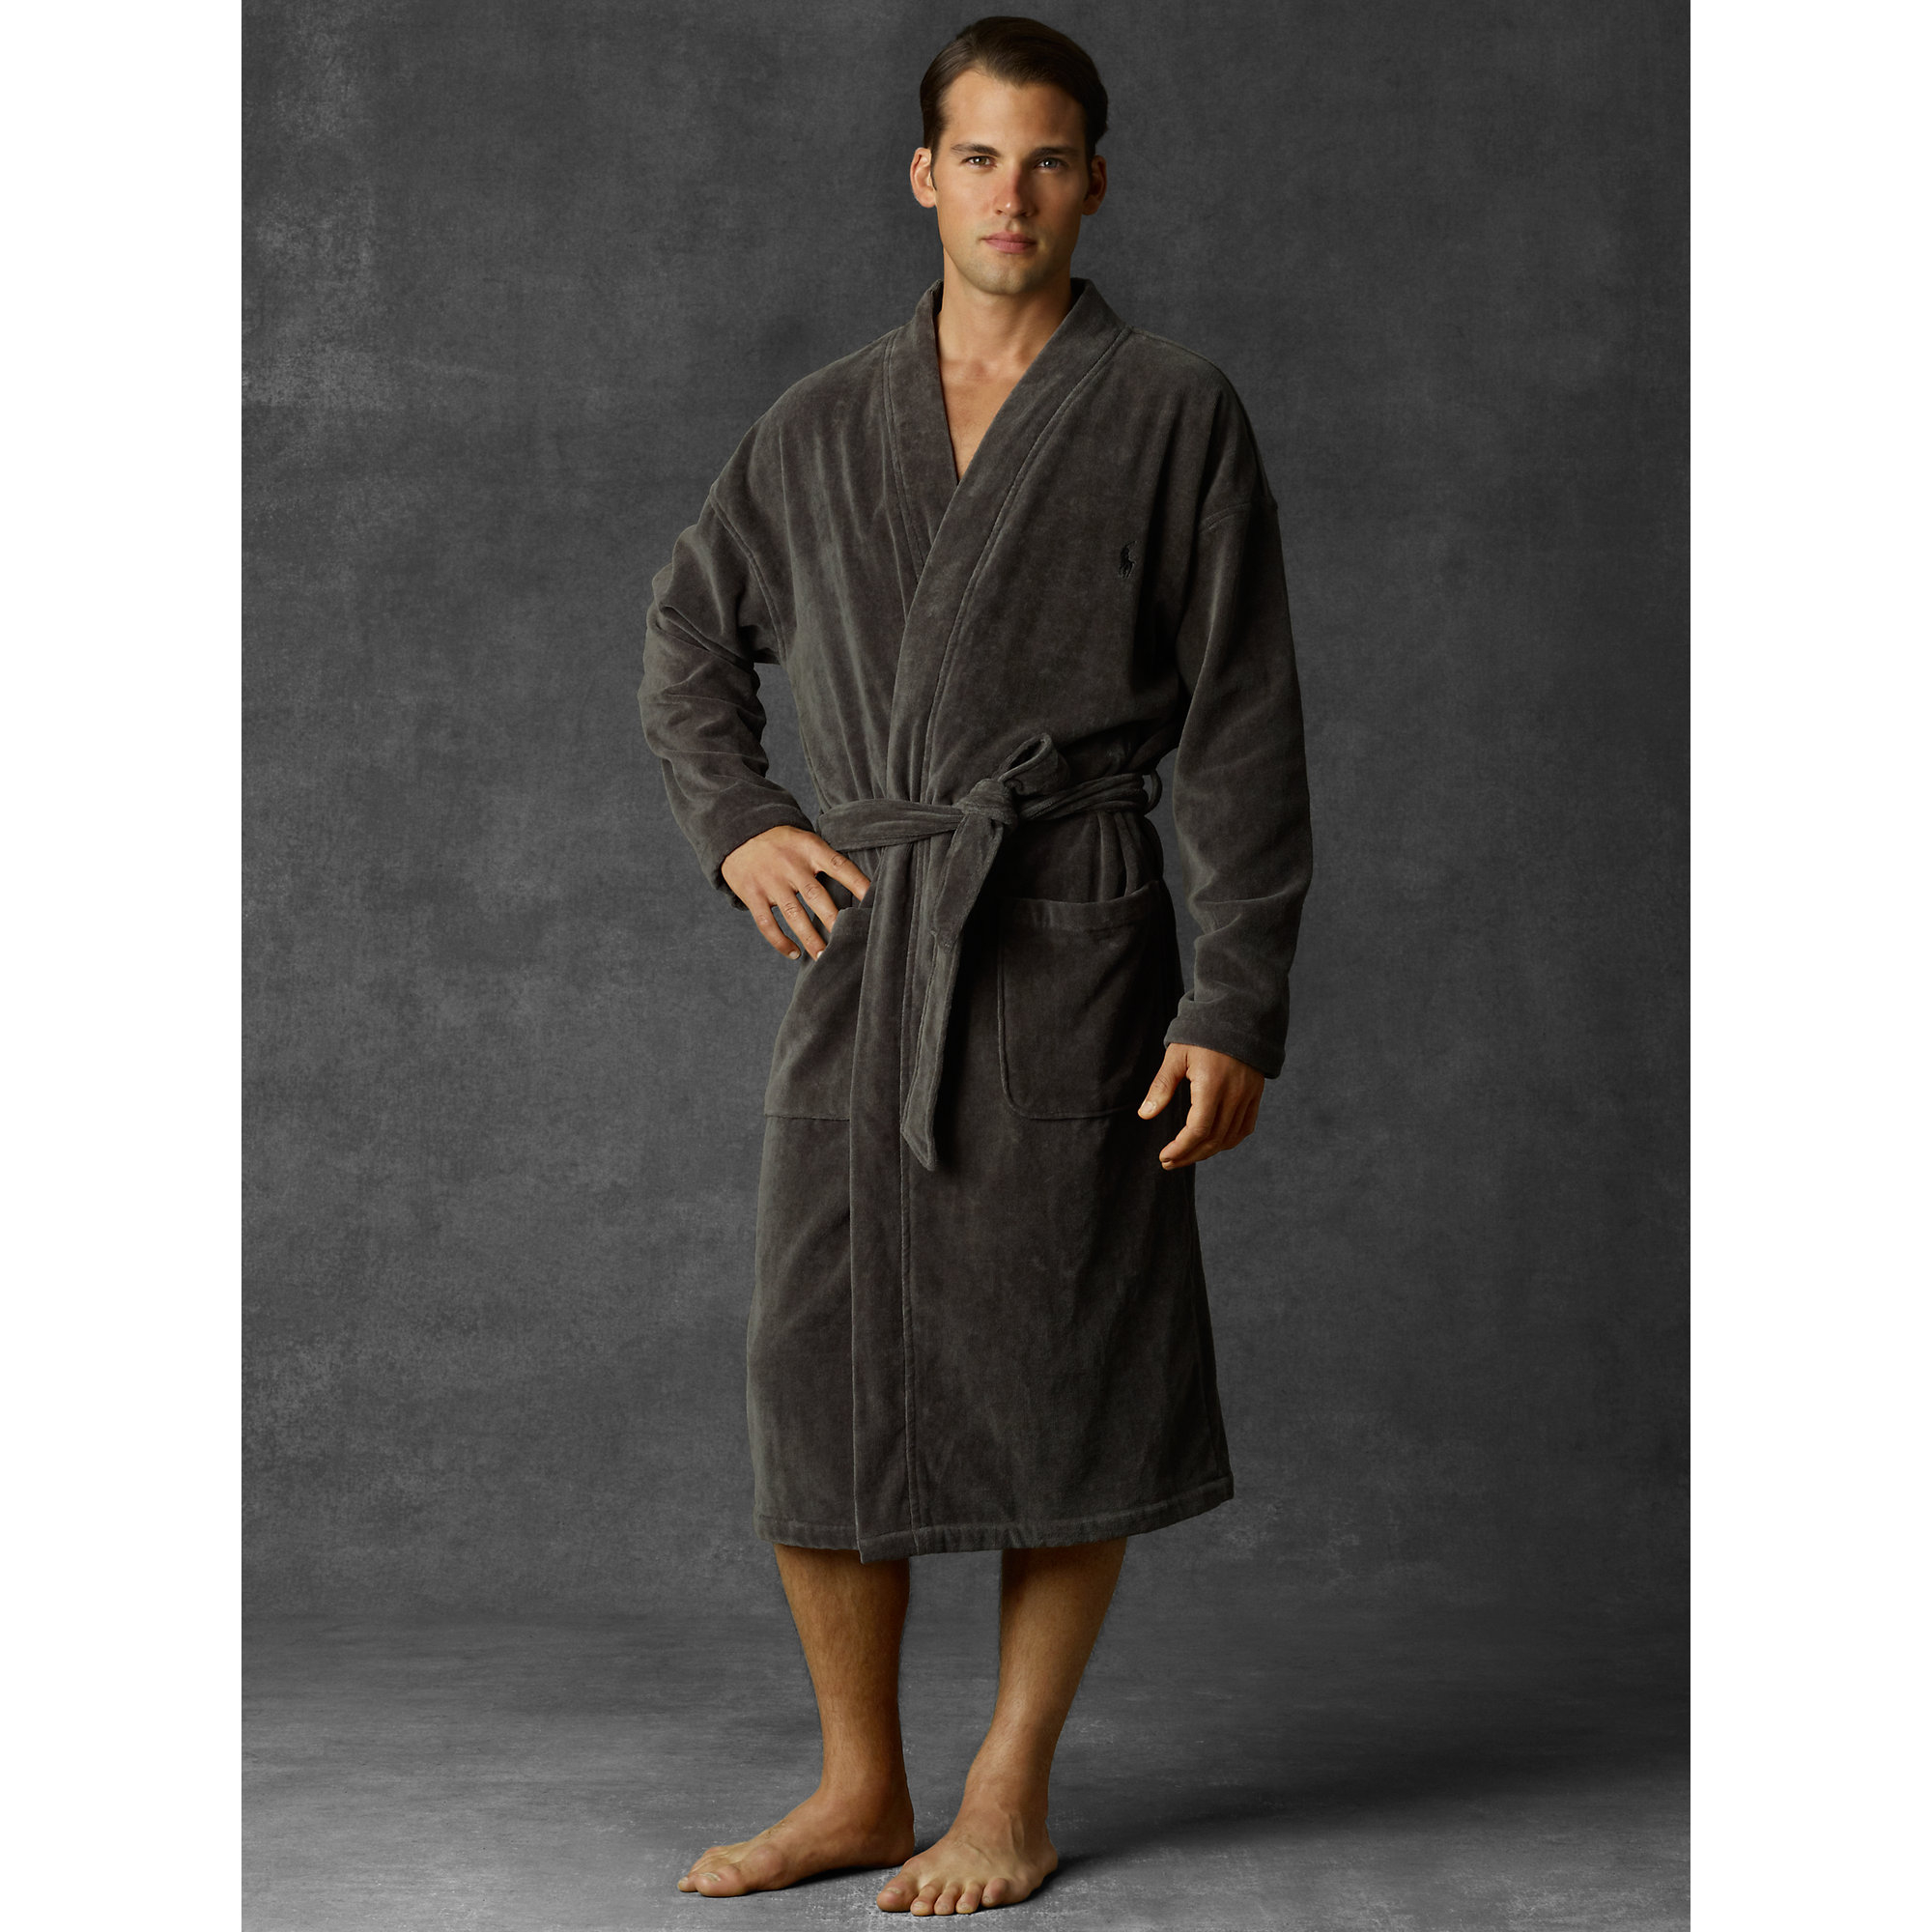 polo ralph lauren terry kimono robe in black for men smokey black lyst. Black Bedroom Furniture Sets. Home Design Ideas